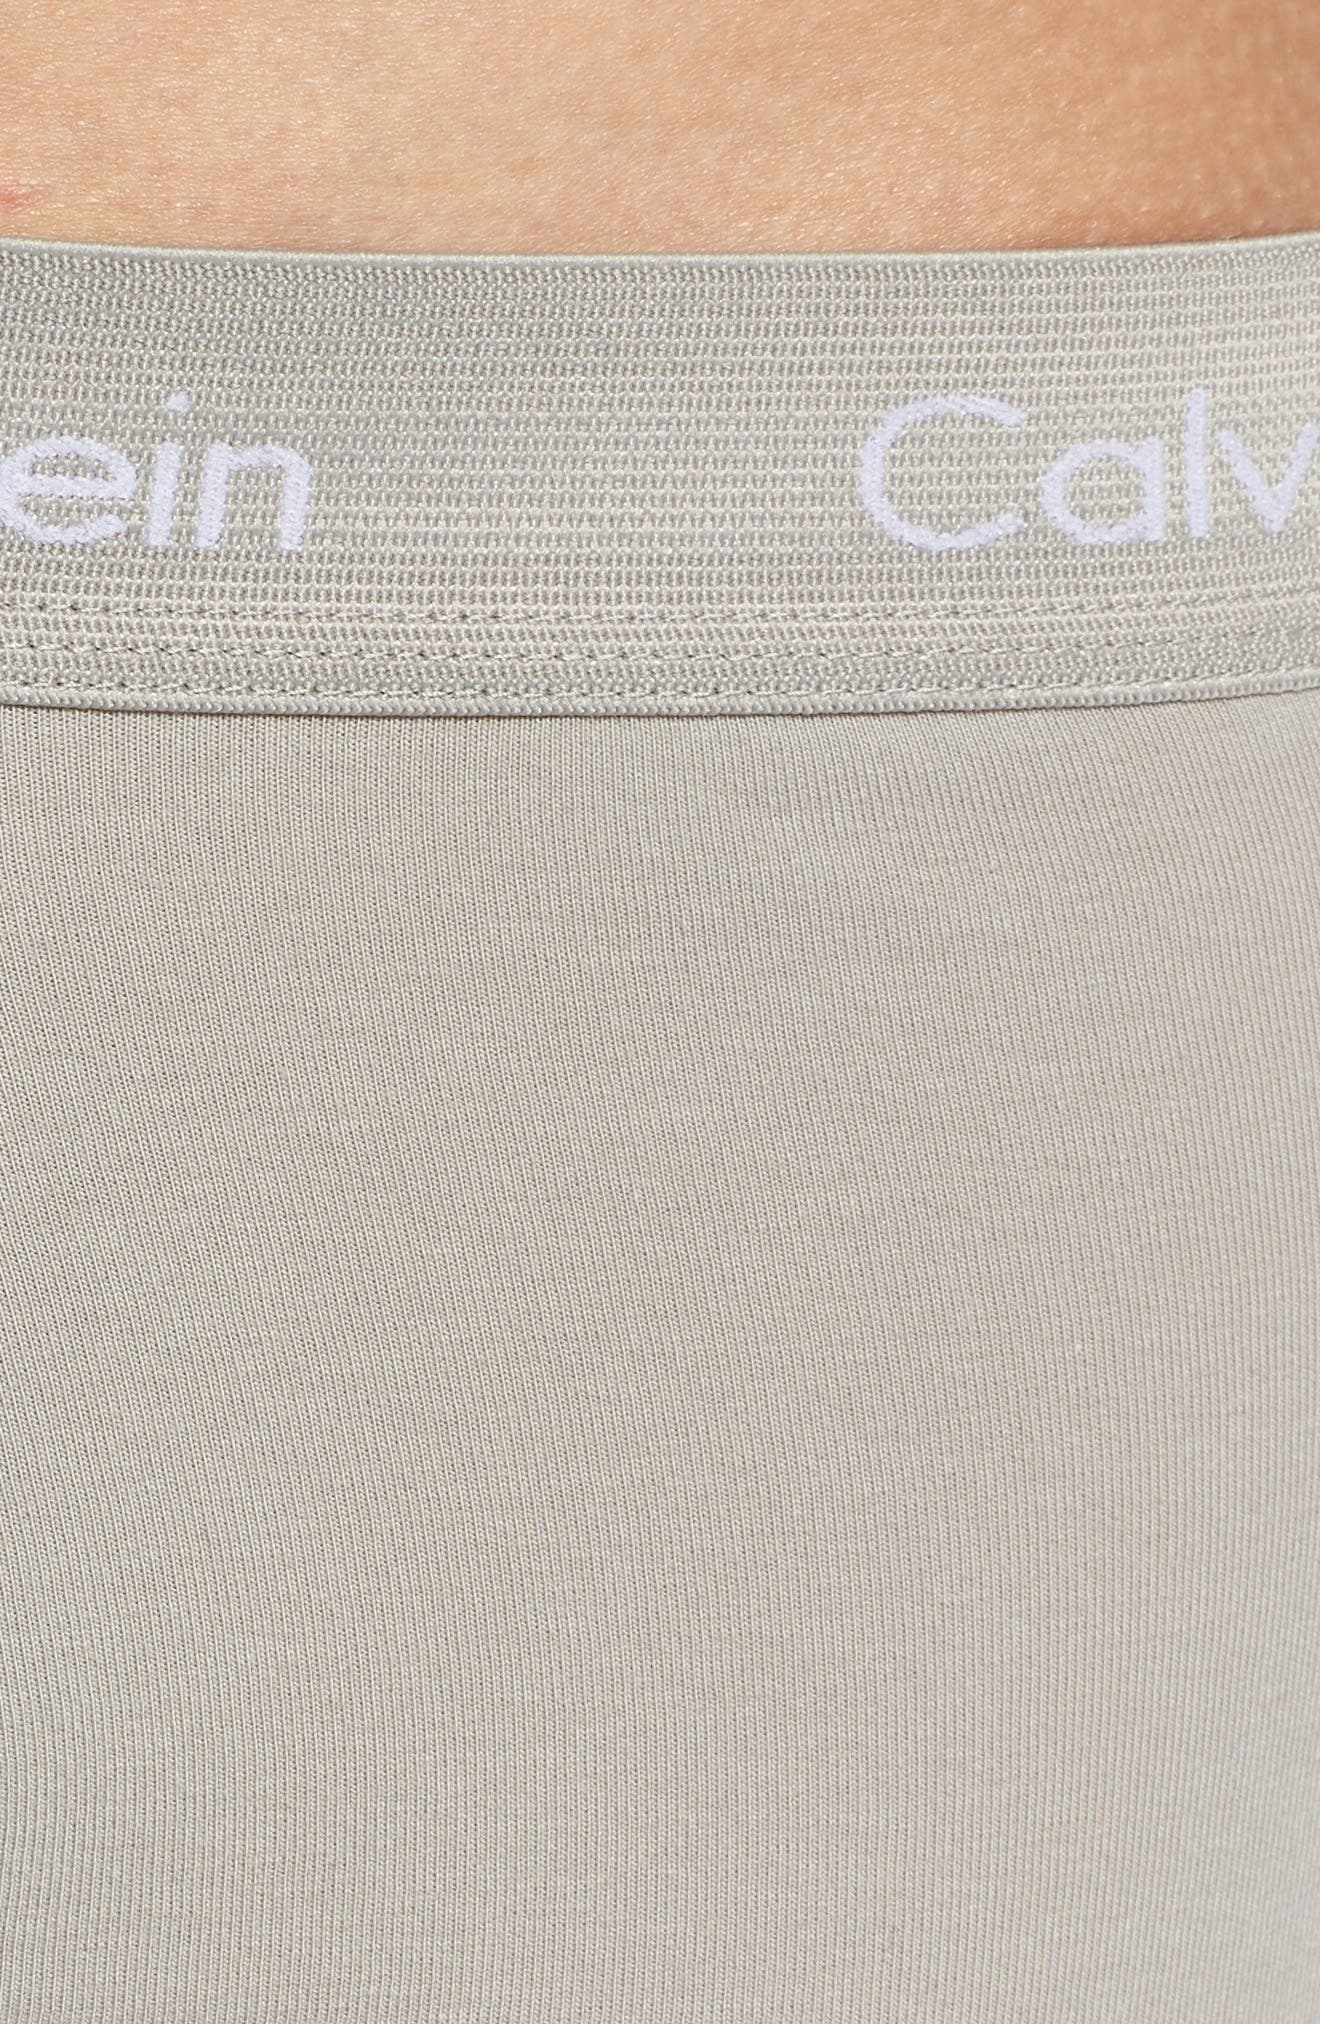 ,                             3-Pack Stretch Cotton Low Rise Trunks,                             Alternate thumbnail 12, color,                             020